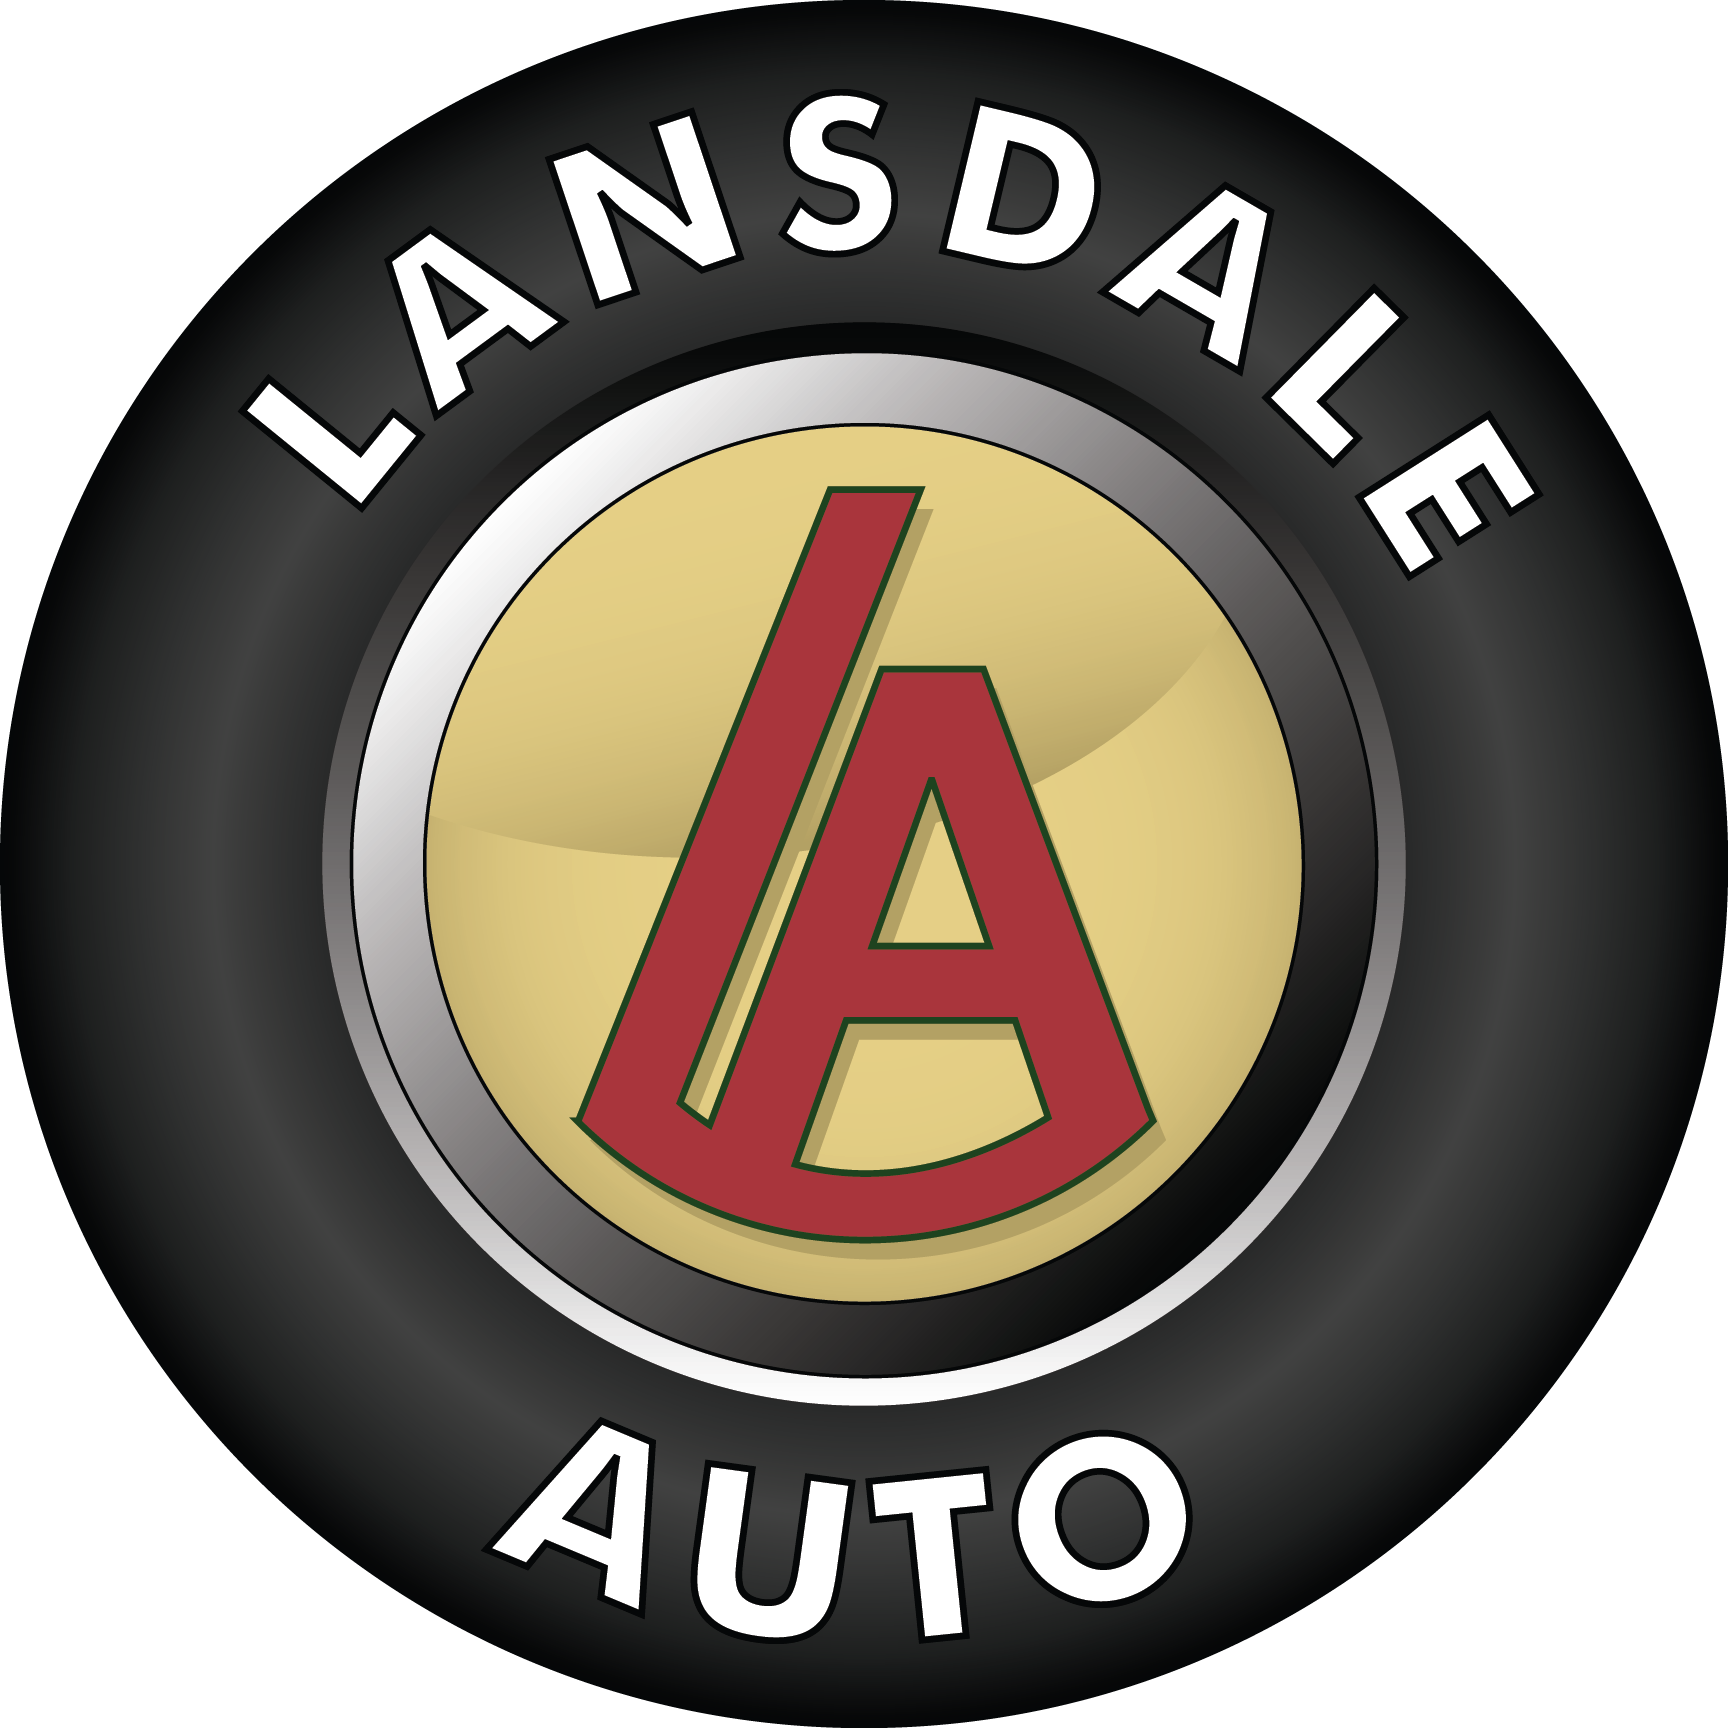 LANSDALE-Logo-Final_RESIZED